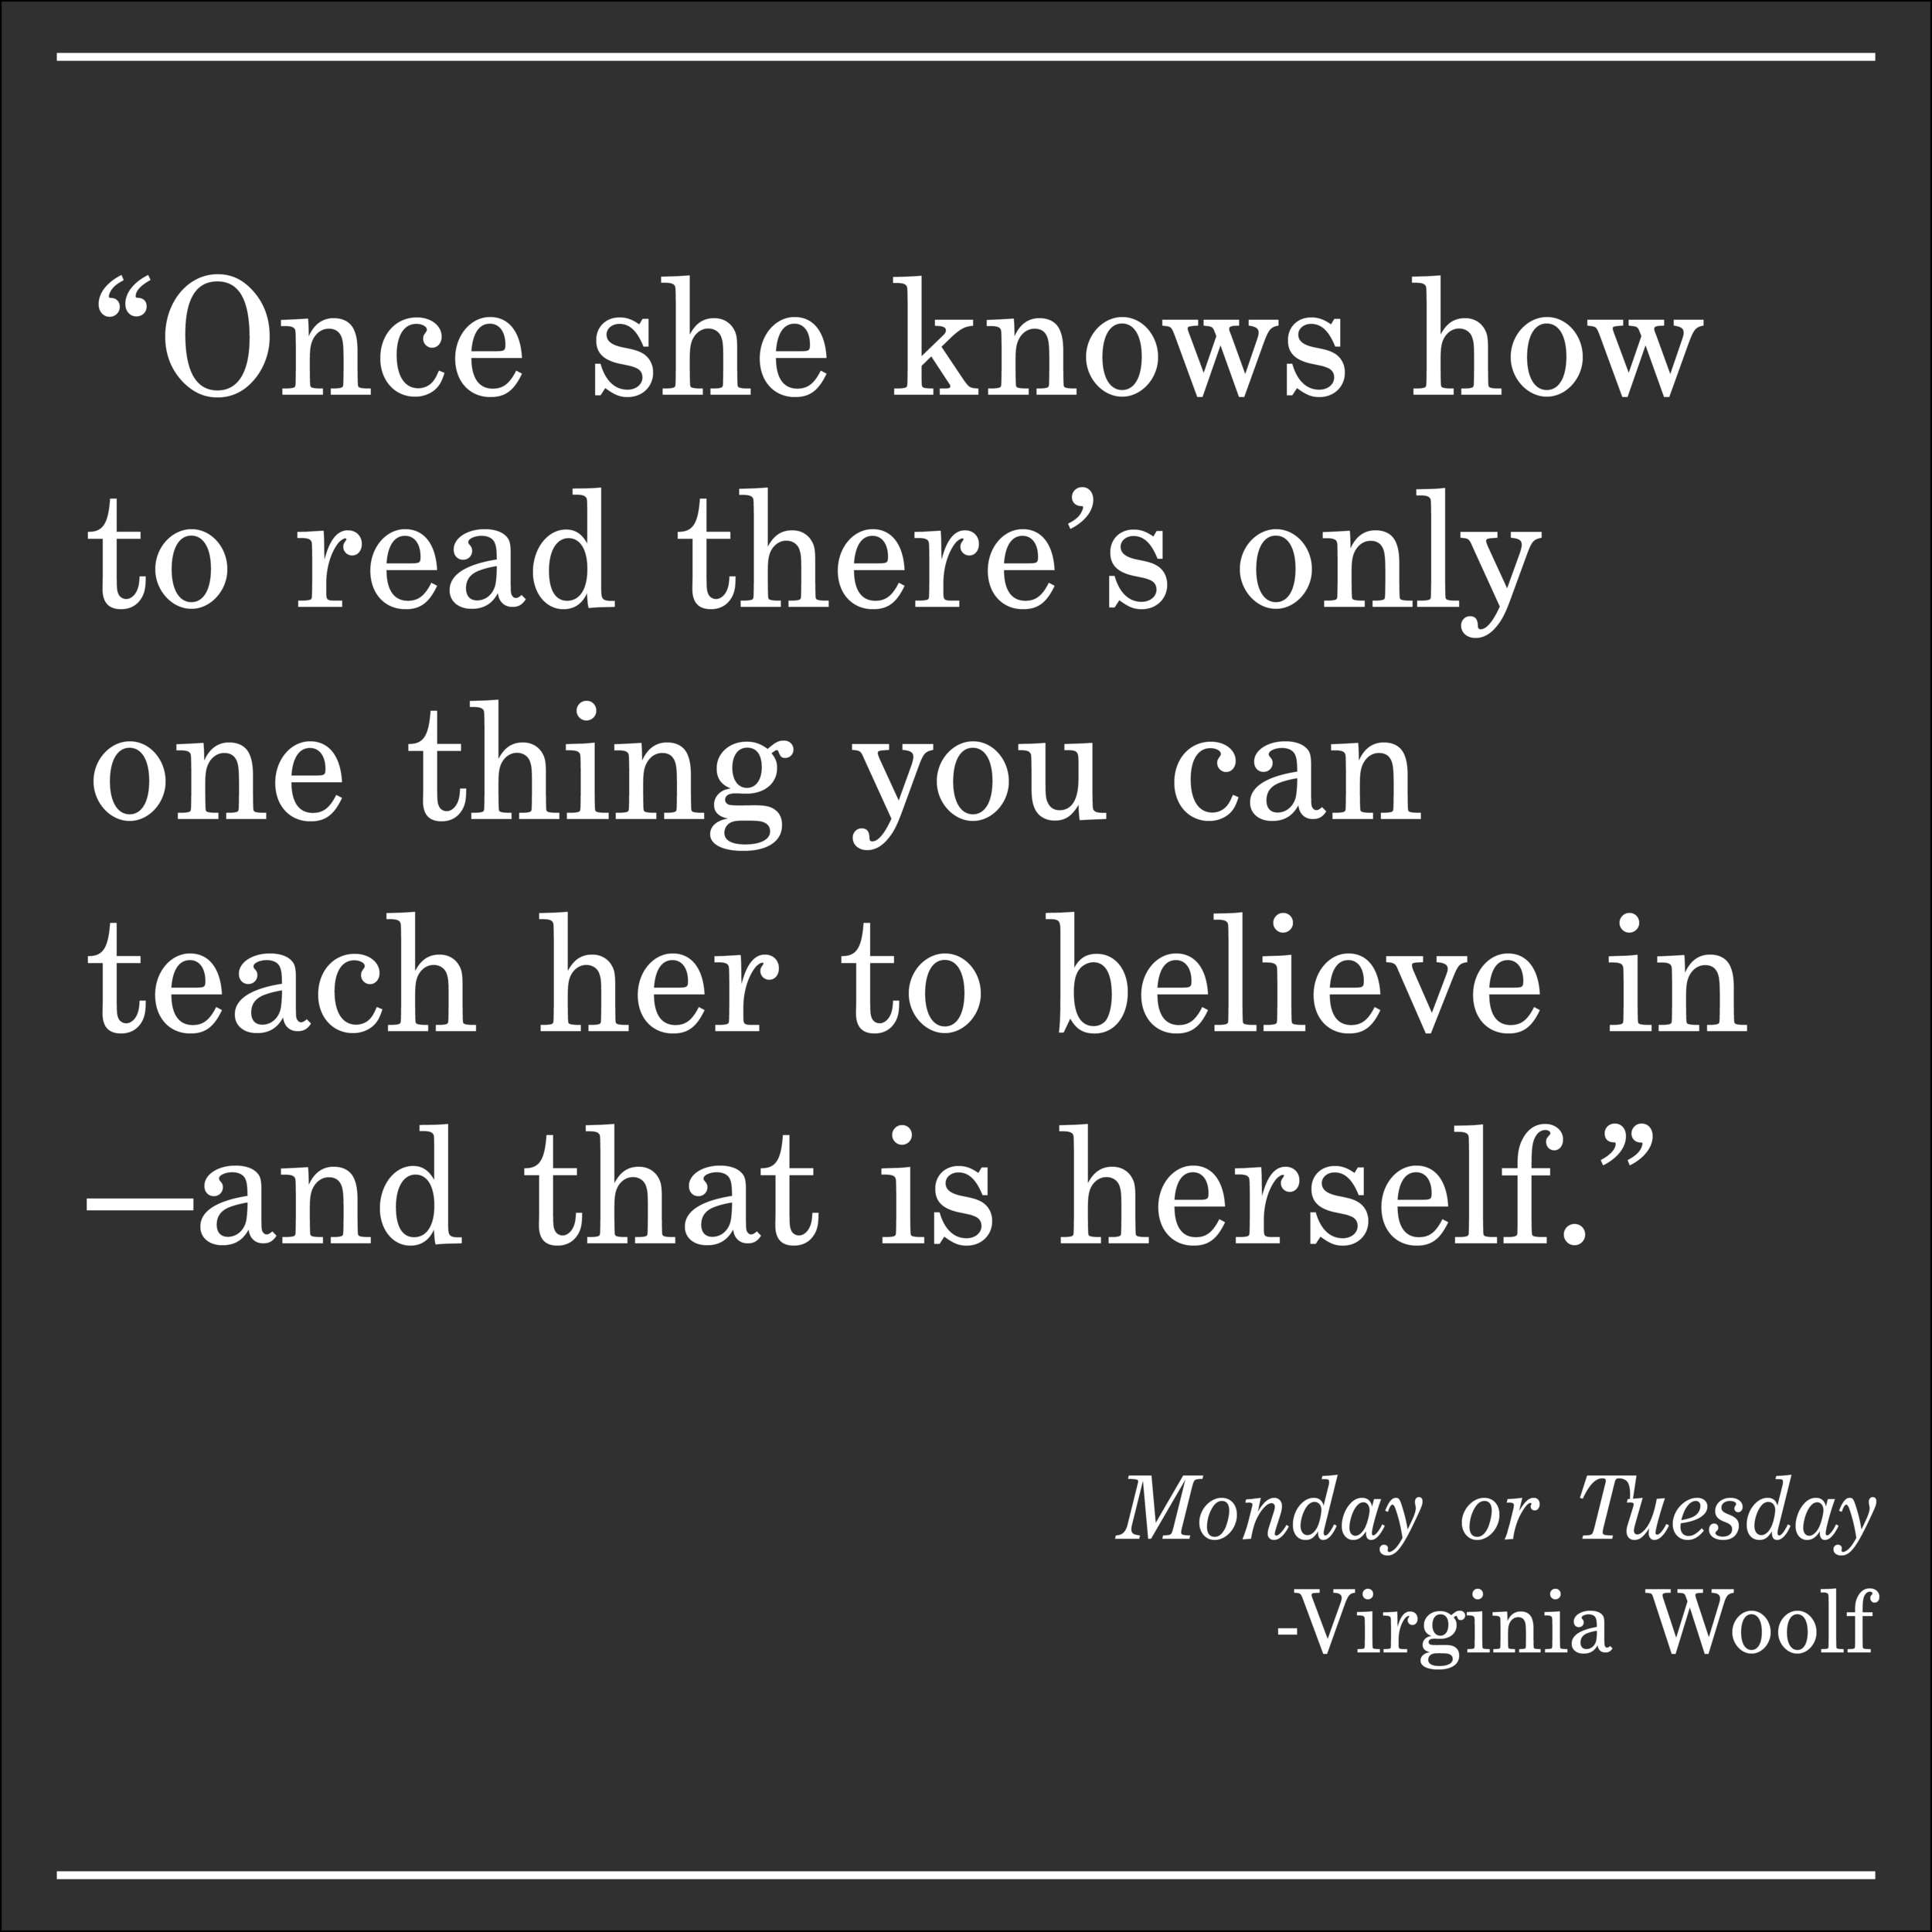 Daily Quote Monday or Tuesday by Virginia Woolf